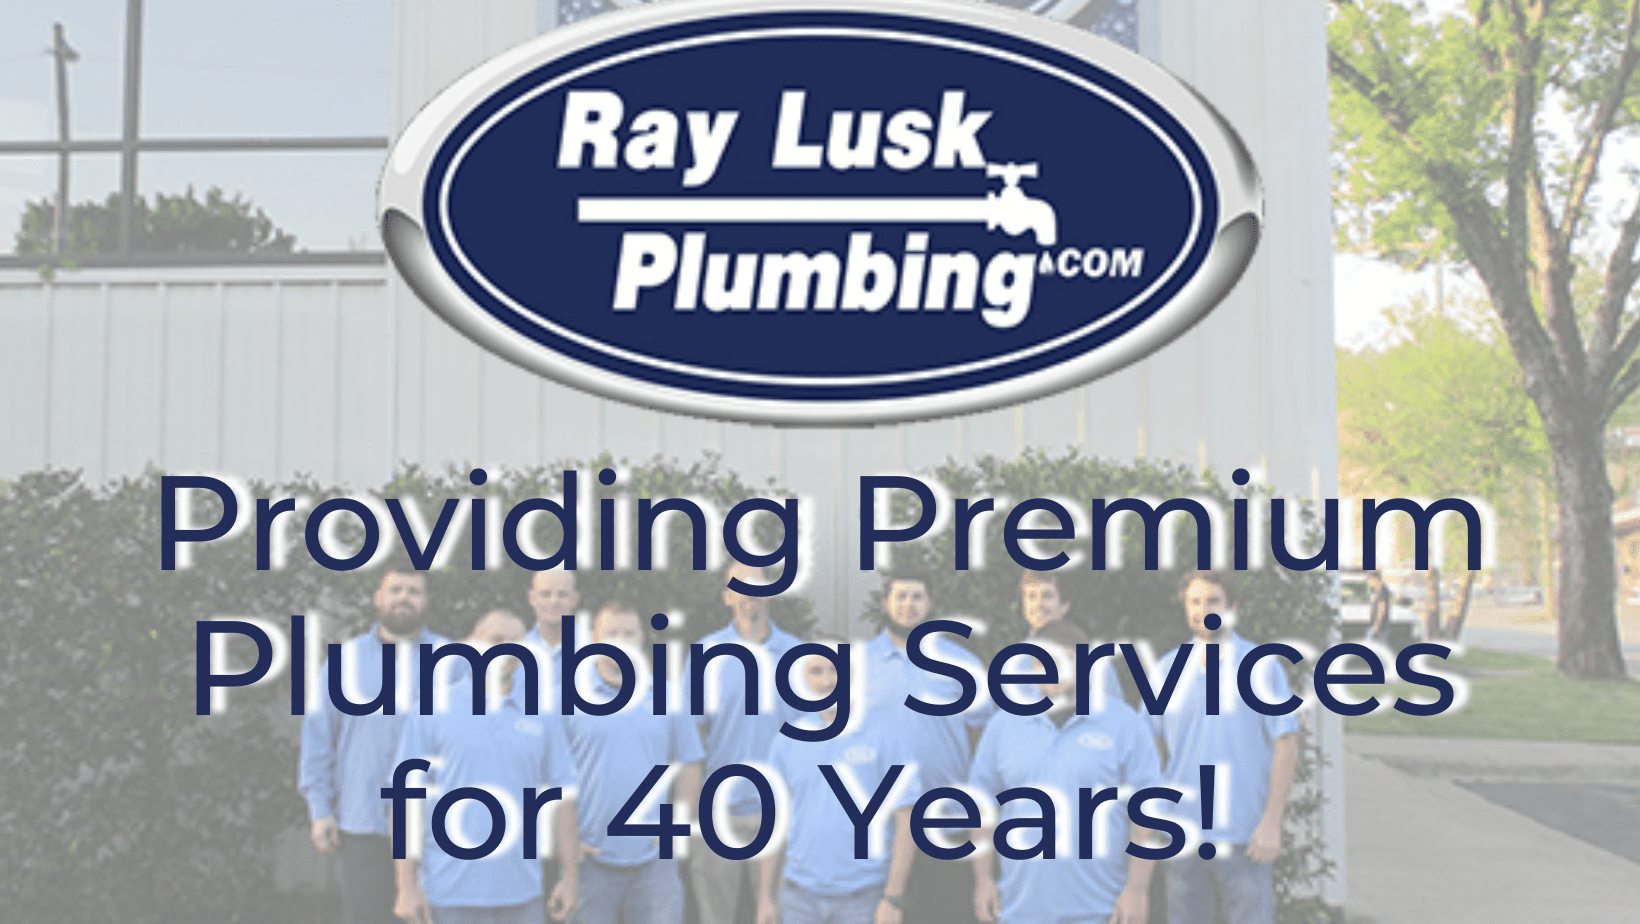 Image text reads: Providing Premium Plumbing Services for 40 Years